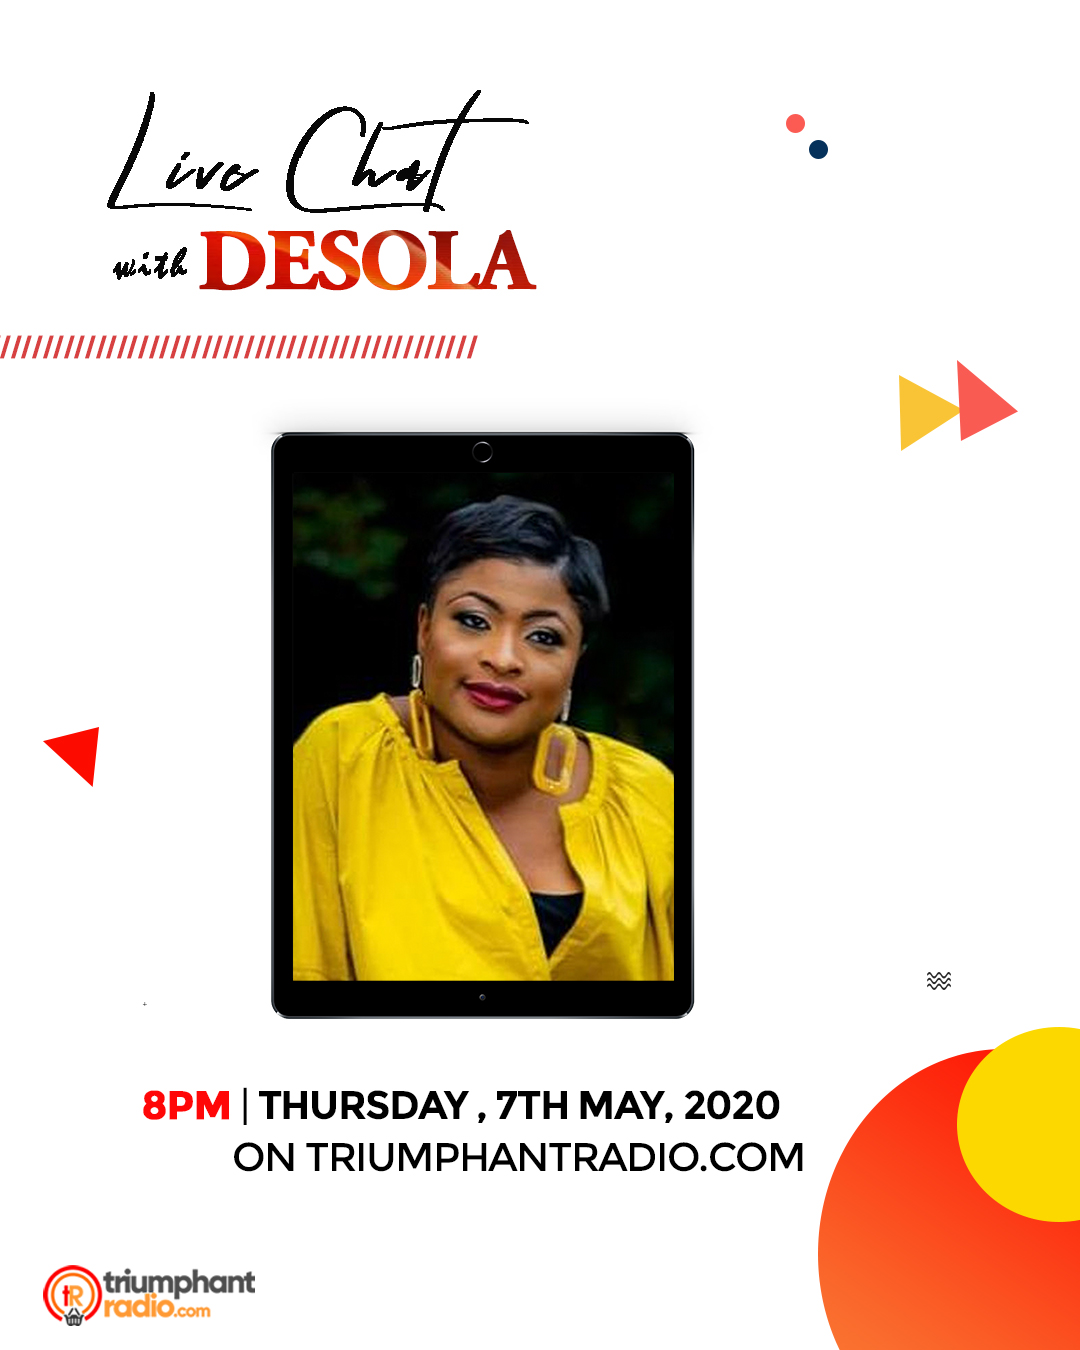 Live Chat with Desola